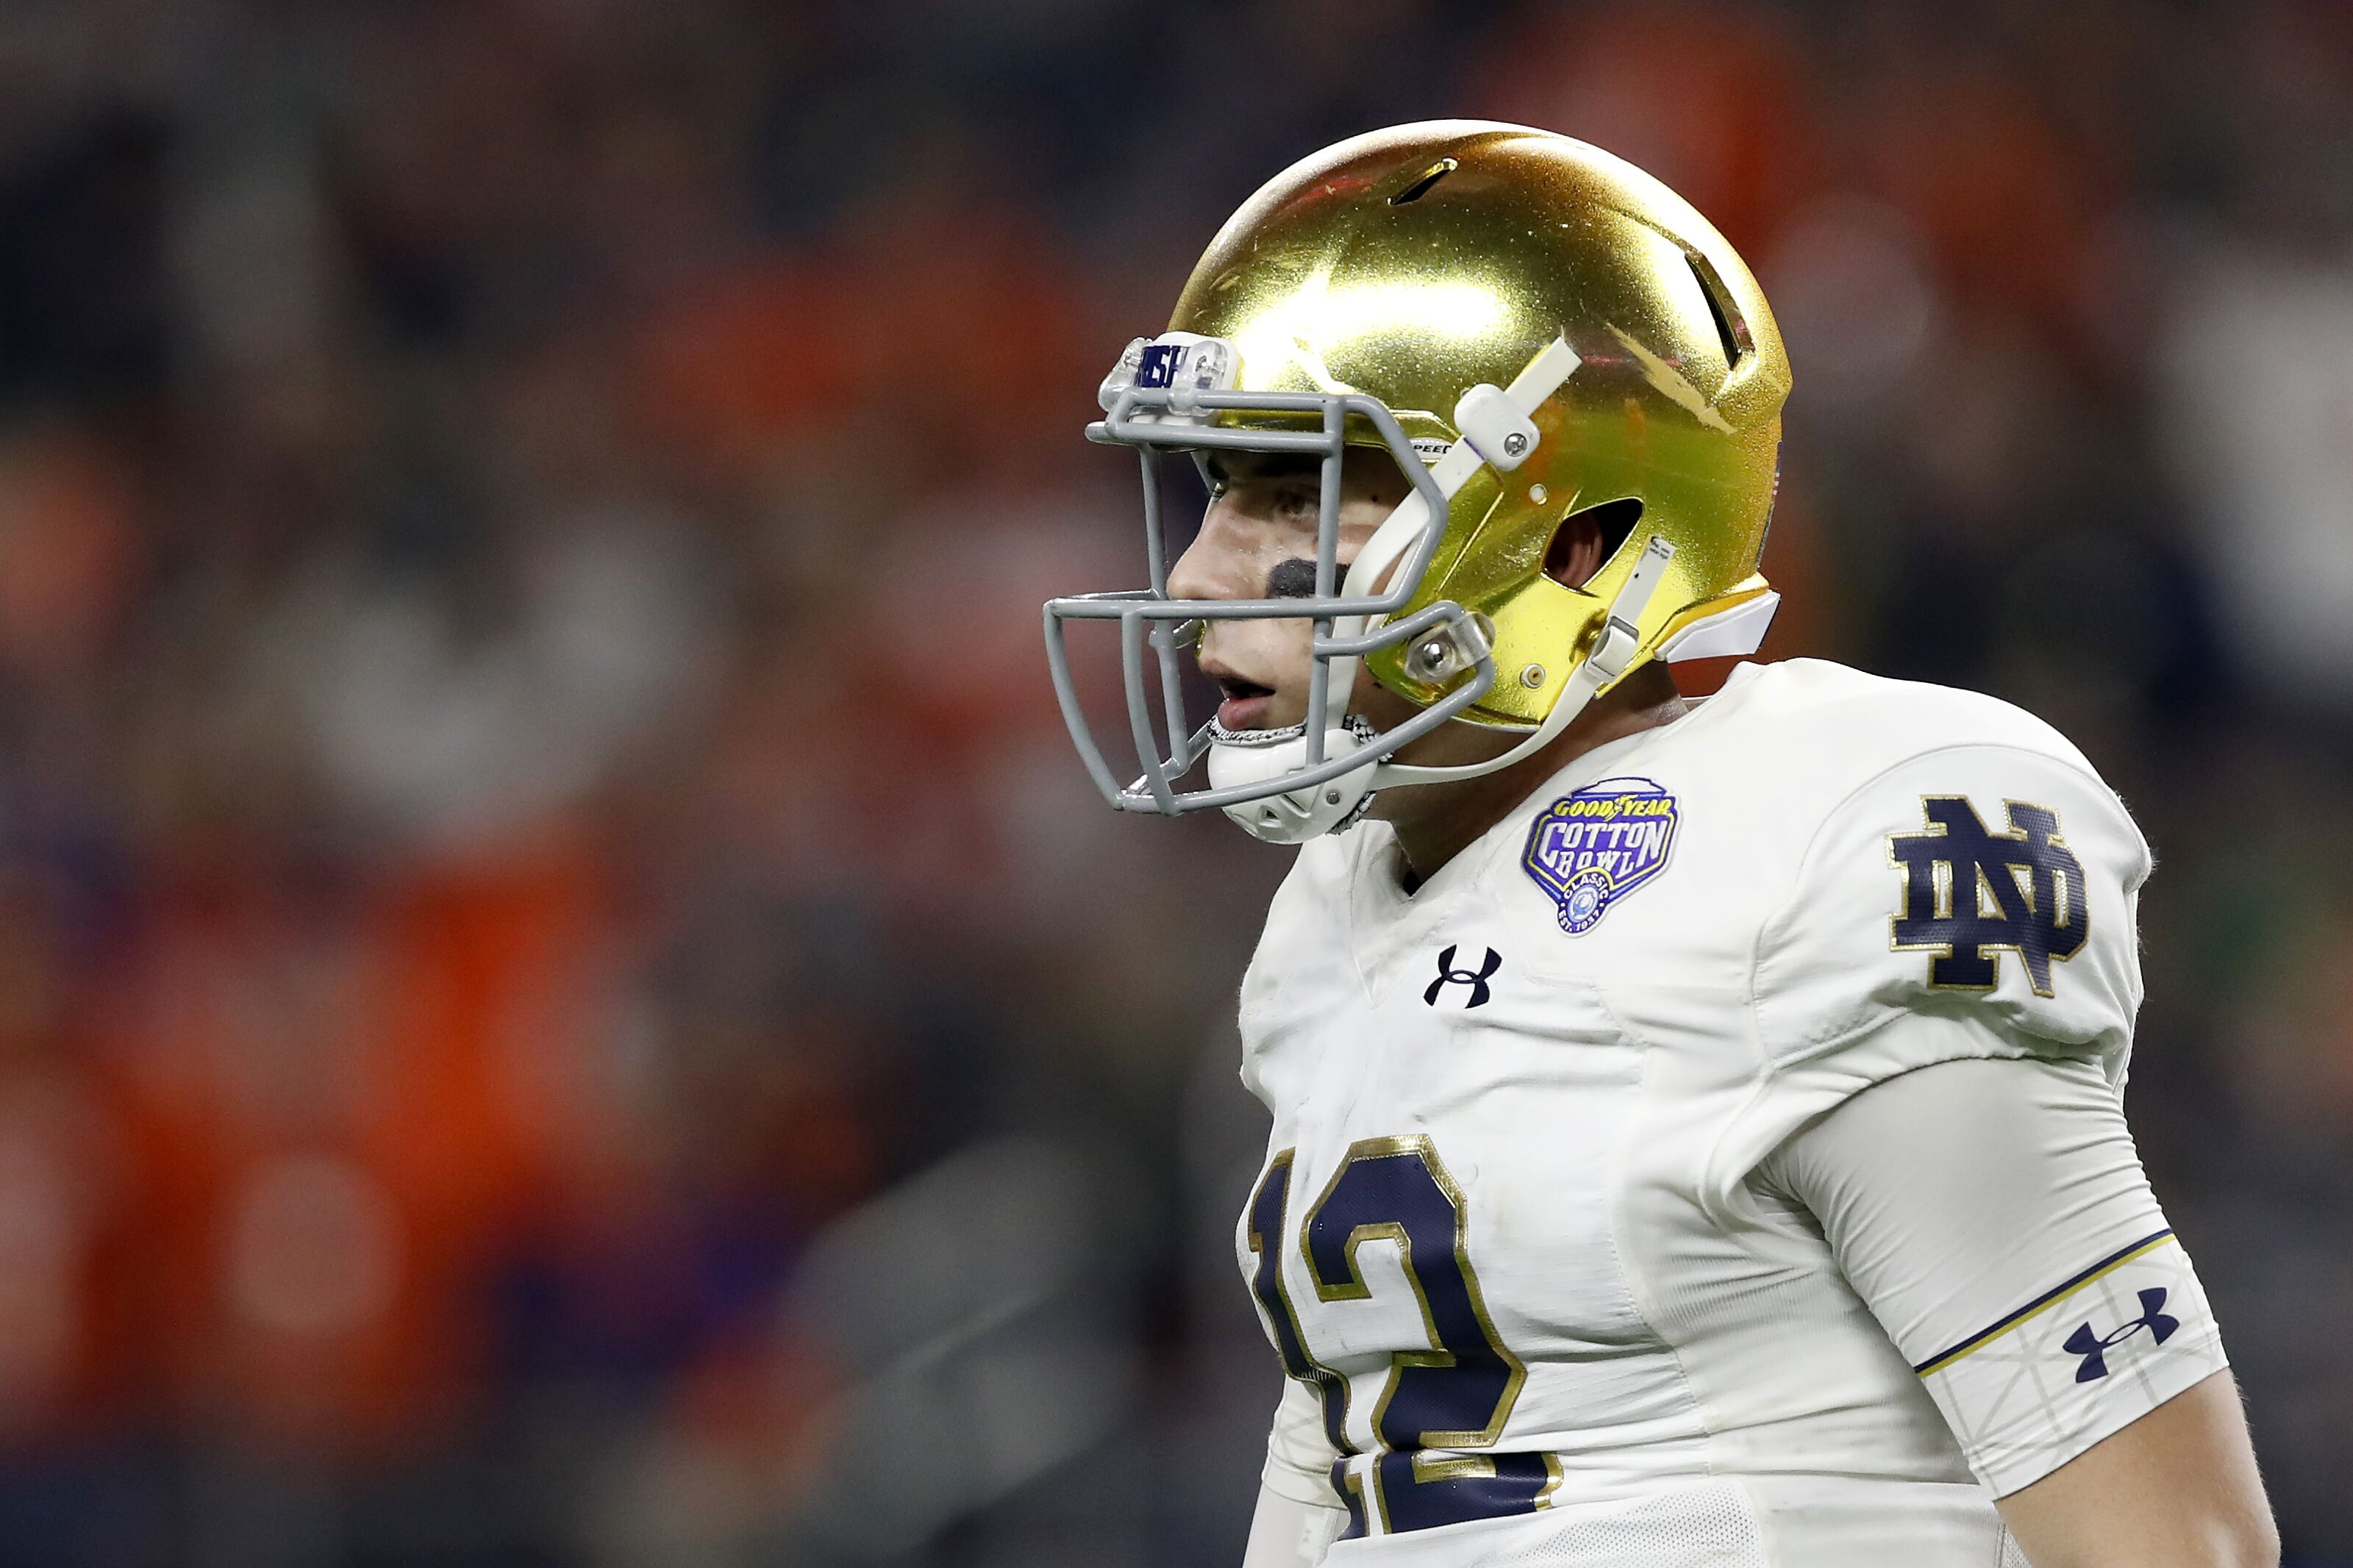 Notre Dame Football: Projecting a Record-Setting 2019 for Ian Book